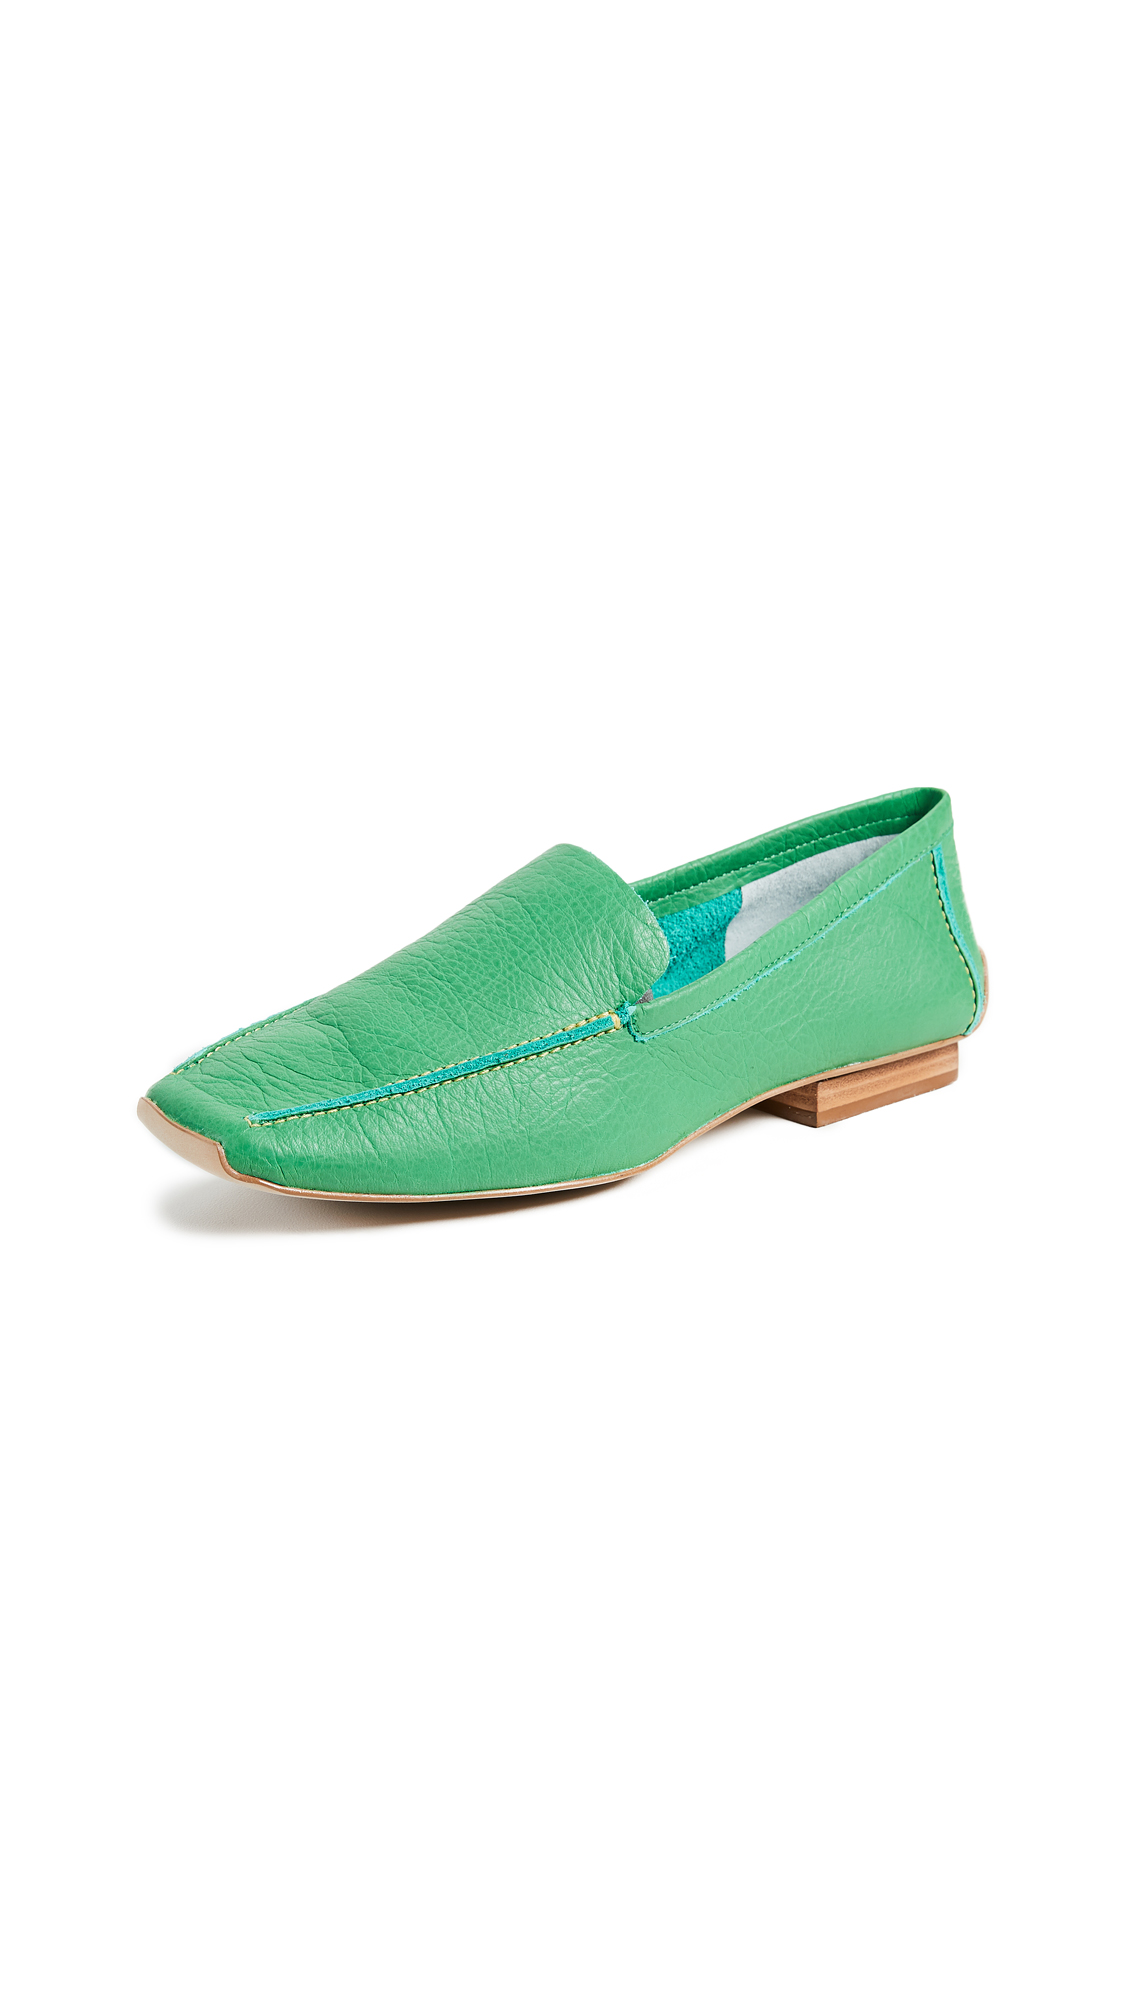 Frances Valentine Elyce Loafers - Grass